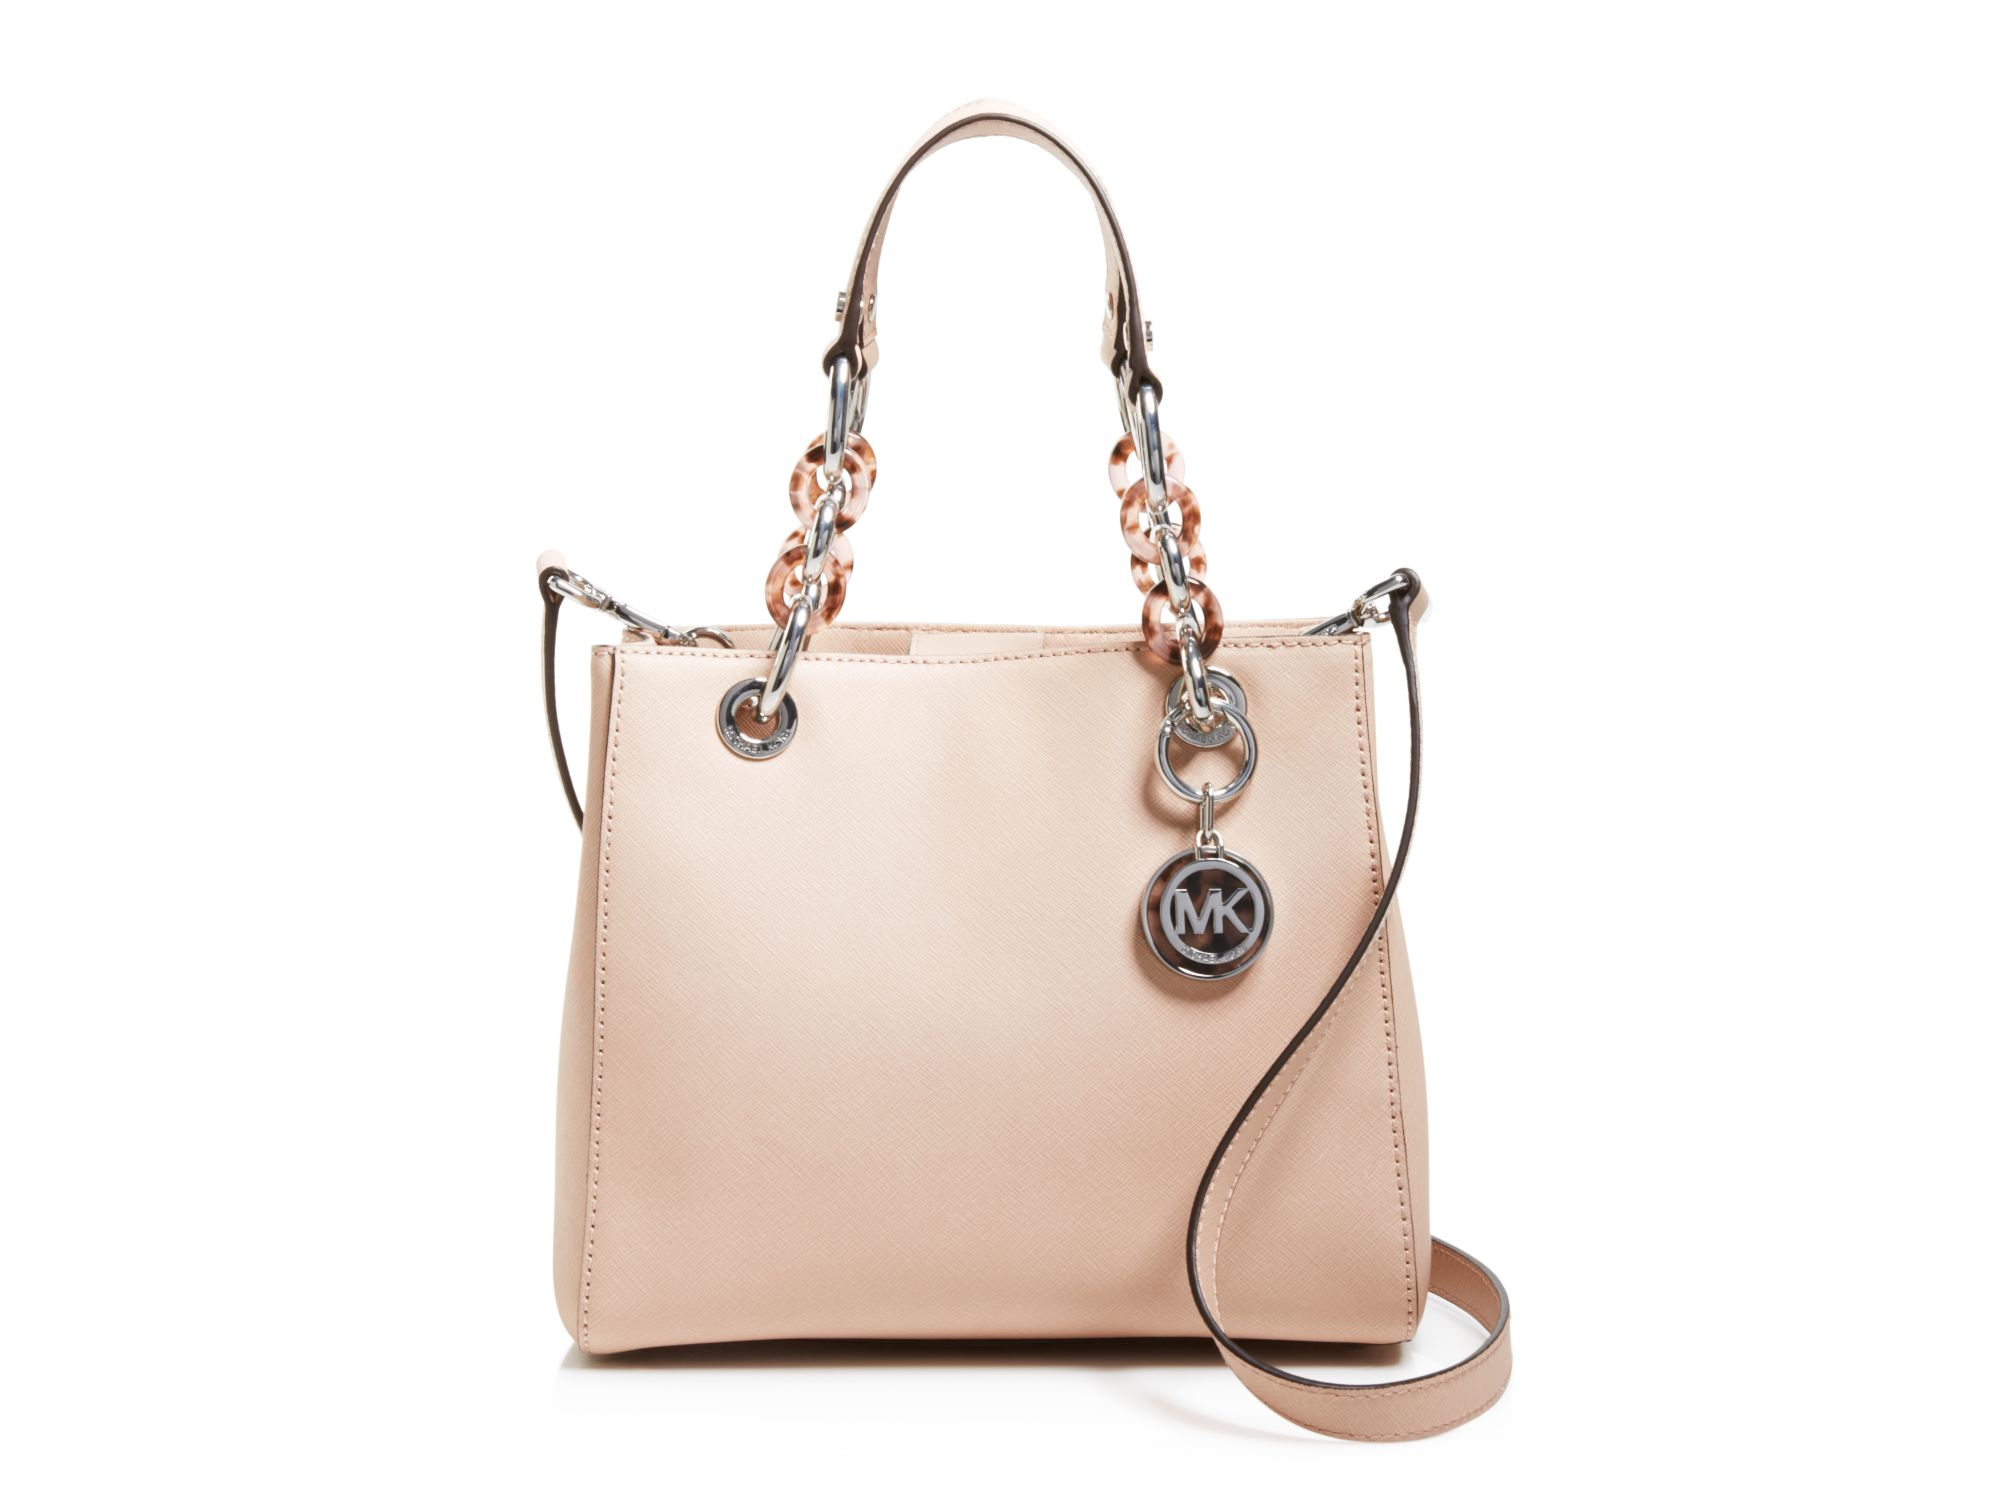 451945da3ad6 Gallery. Previously sold at: Bloomingdale's · Women's Michael By Michael  Kors Cynthia